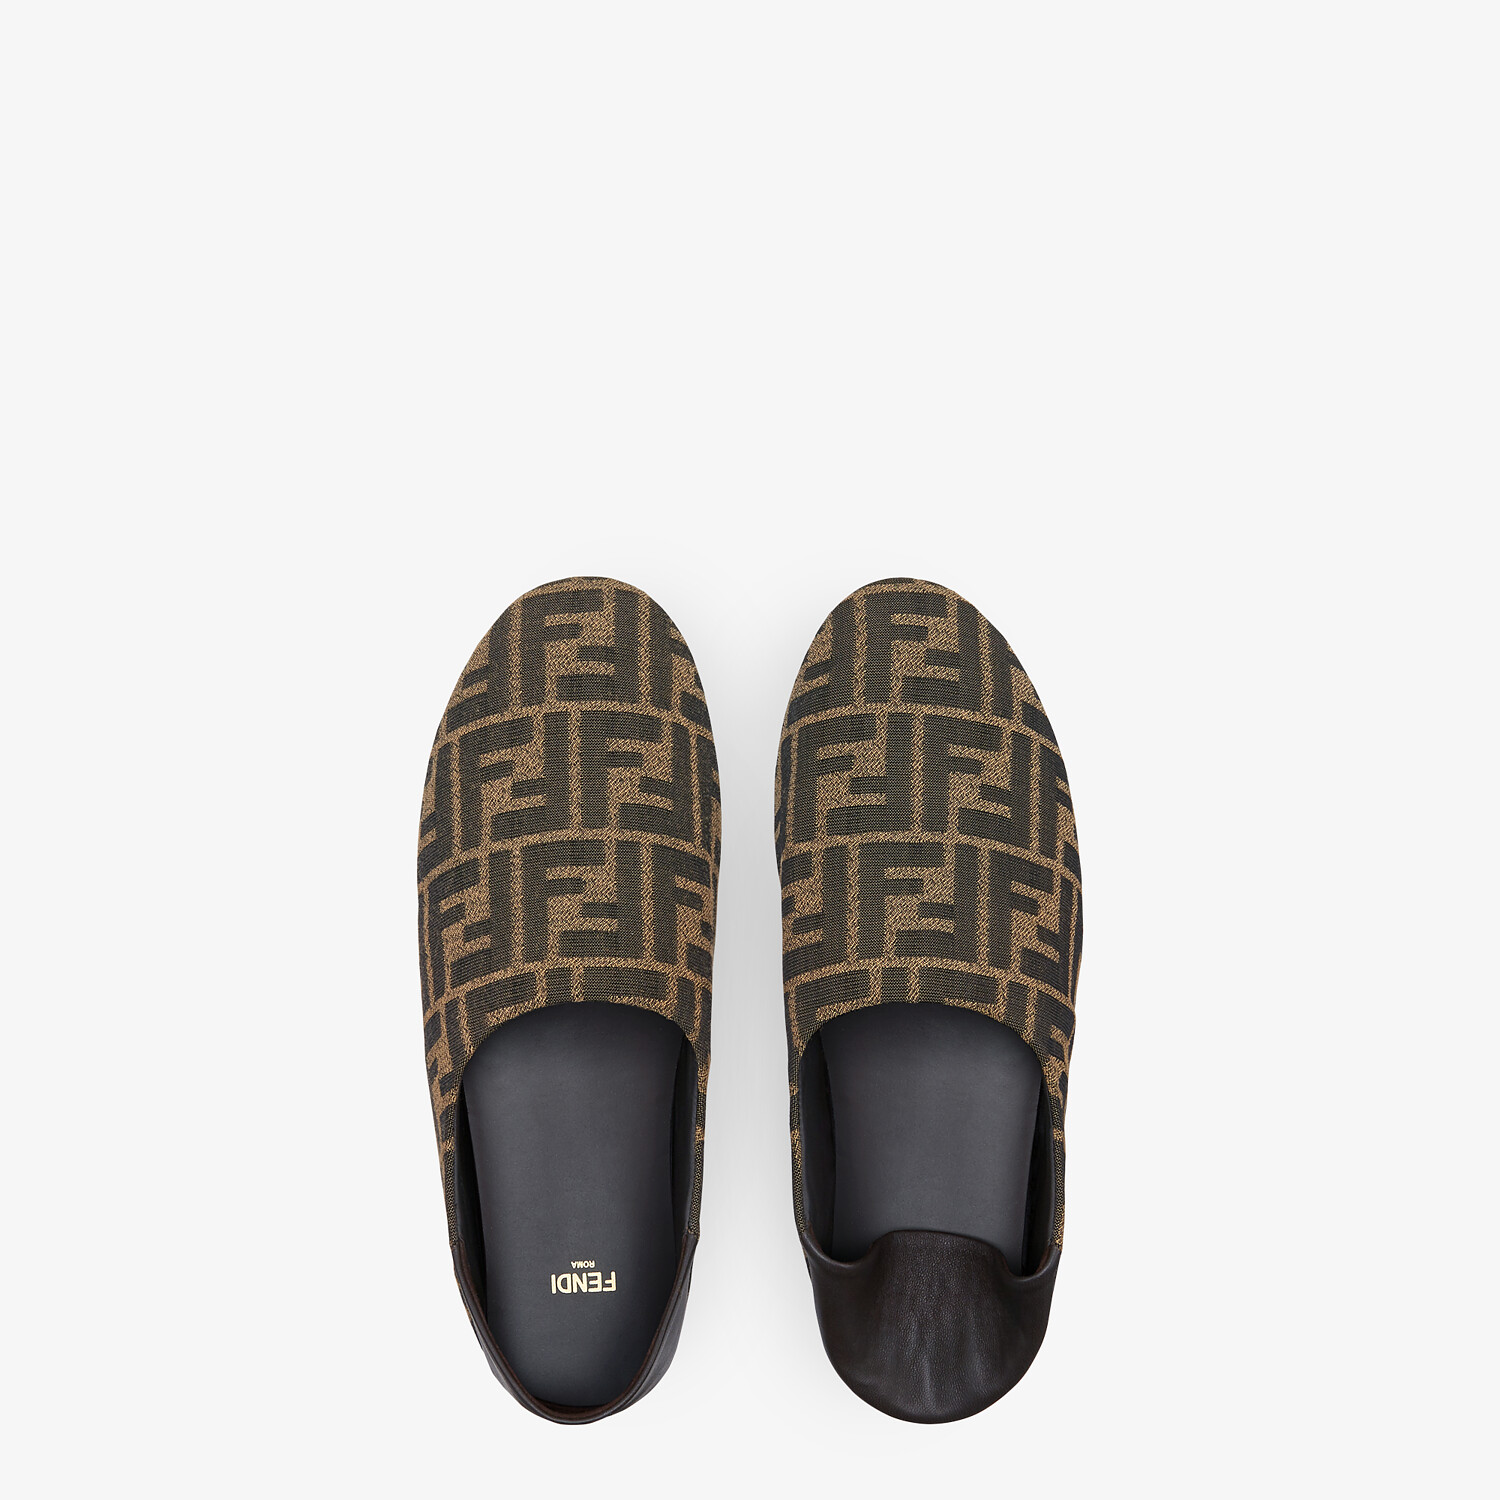 FENDI SLIPPERS - Brown fabric slippers - view 4 detail